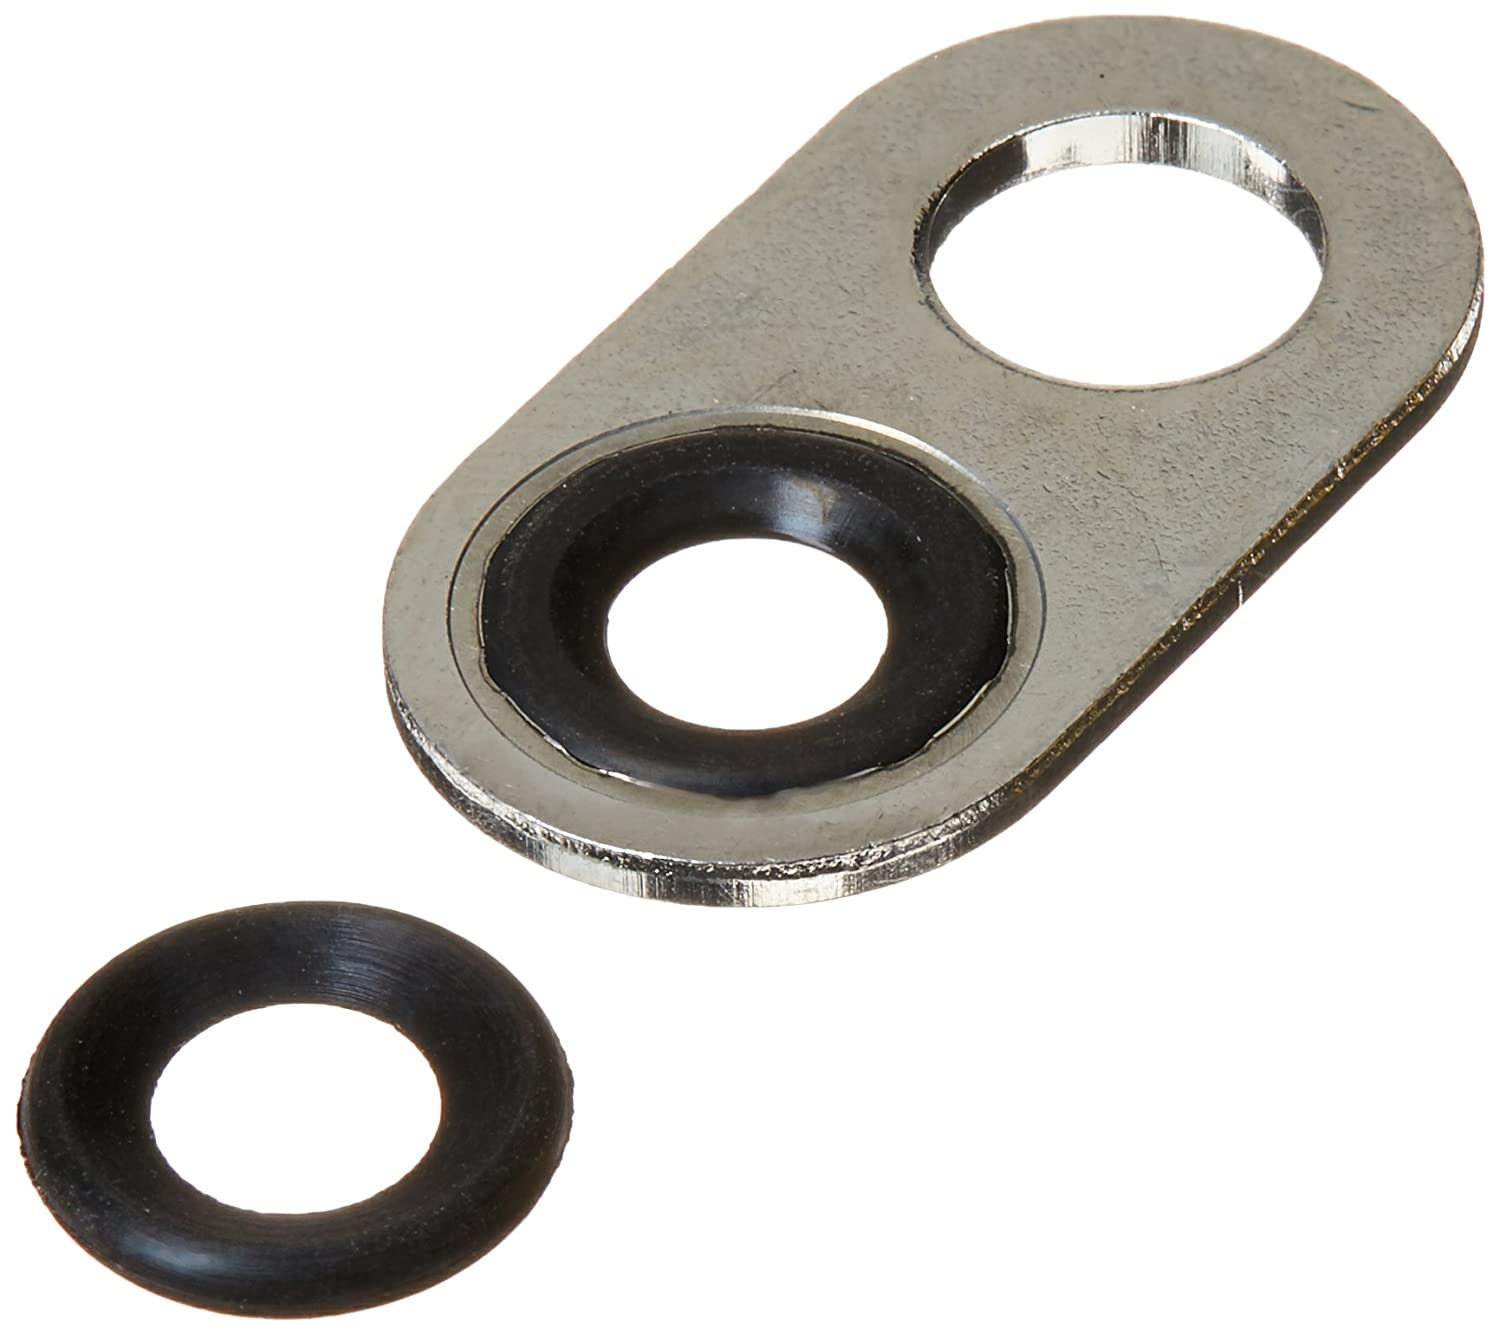 Fel-Pro ES 73027 Water Crossover Mounting Set